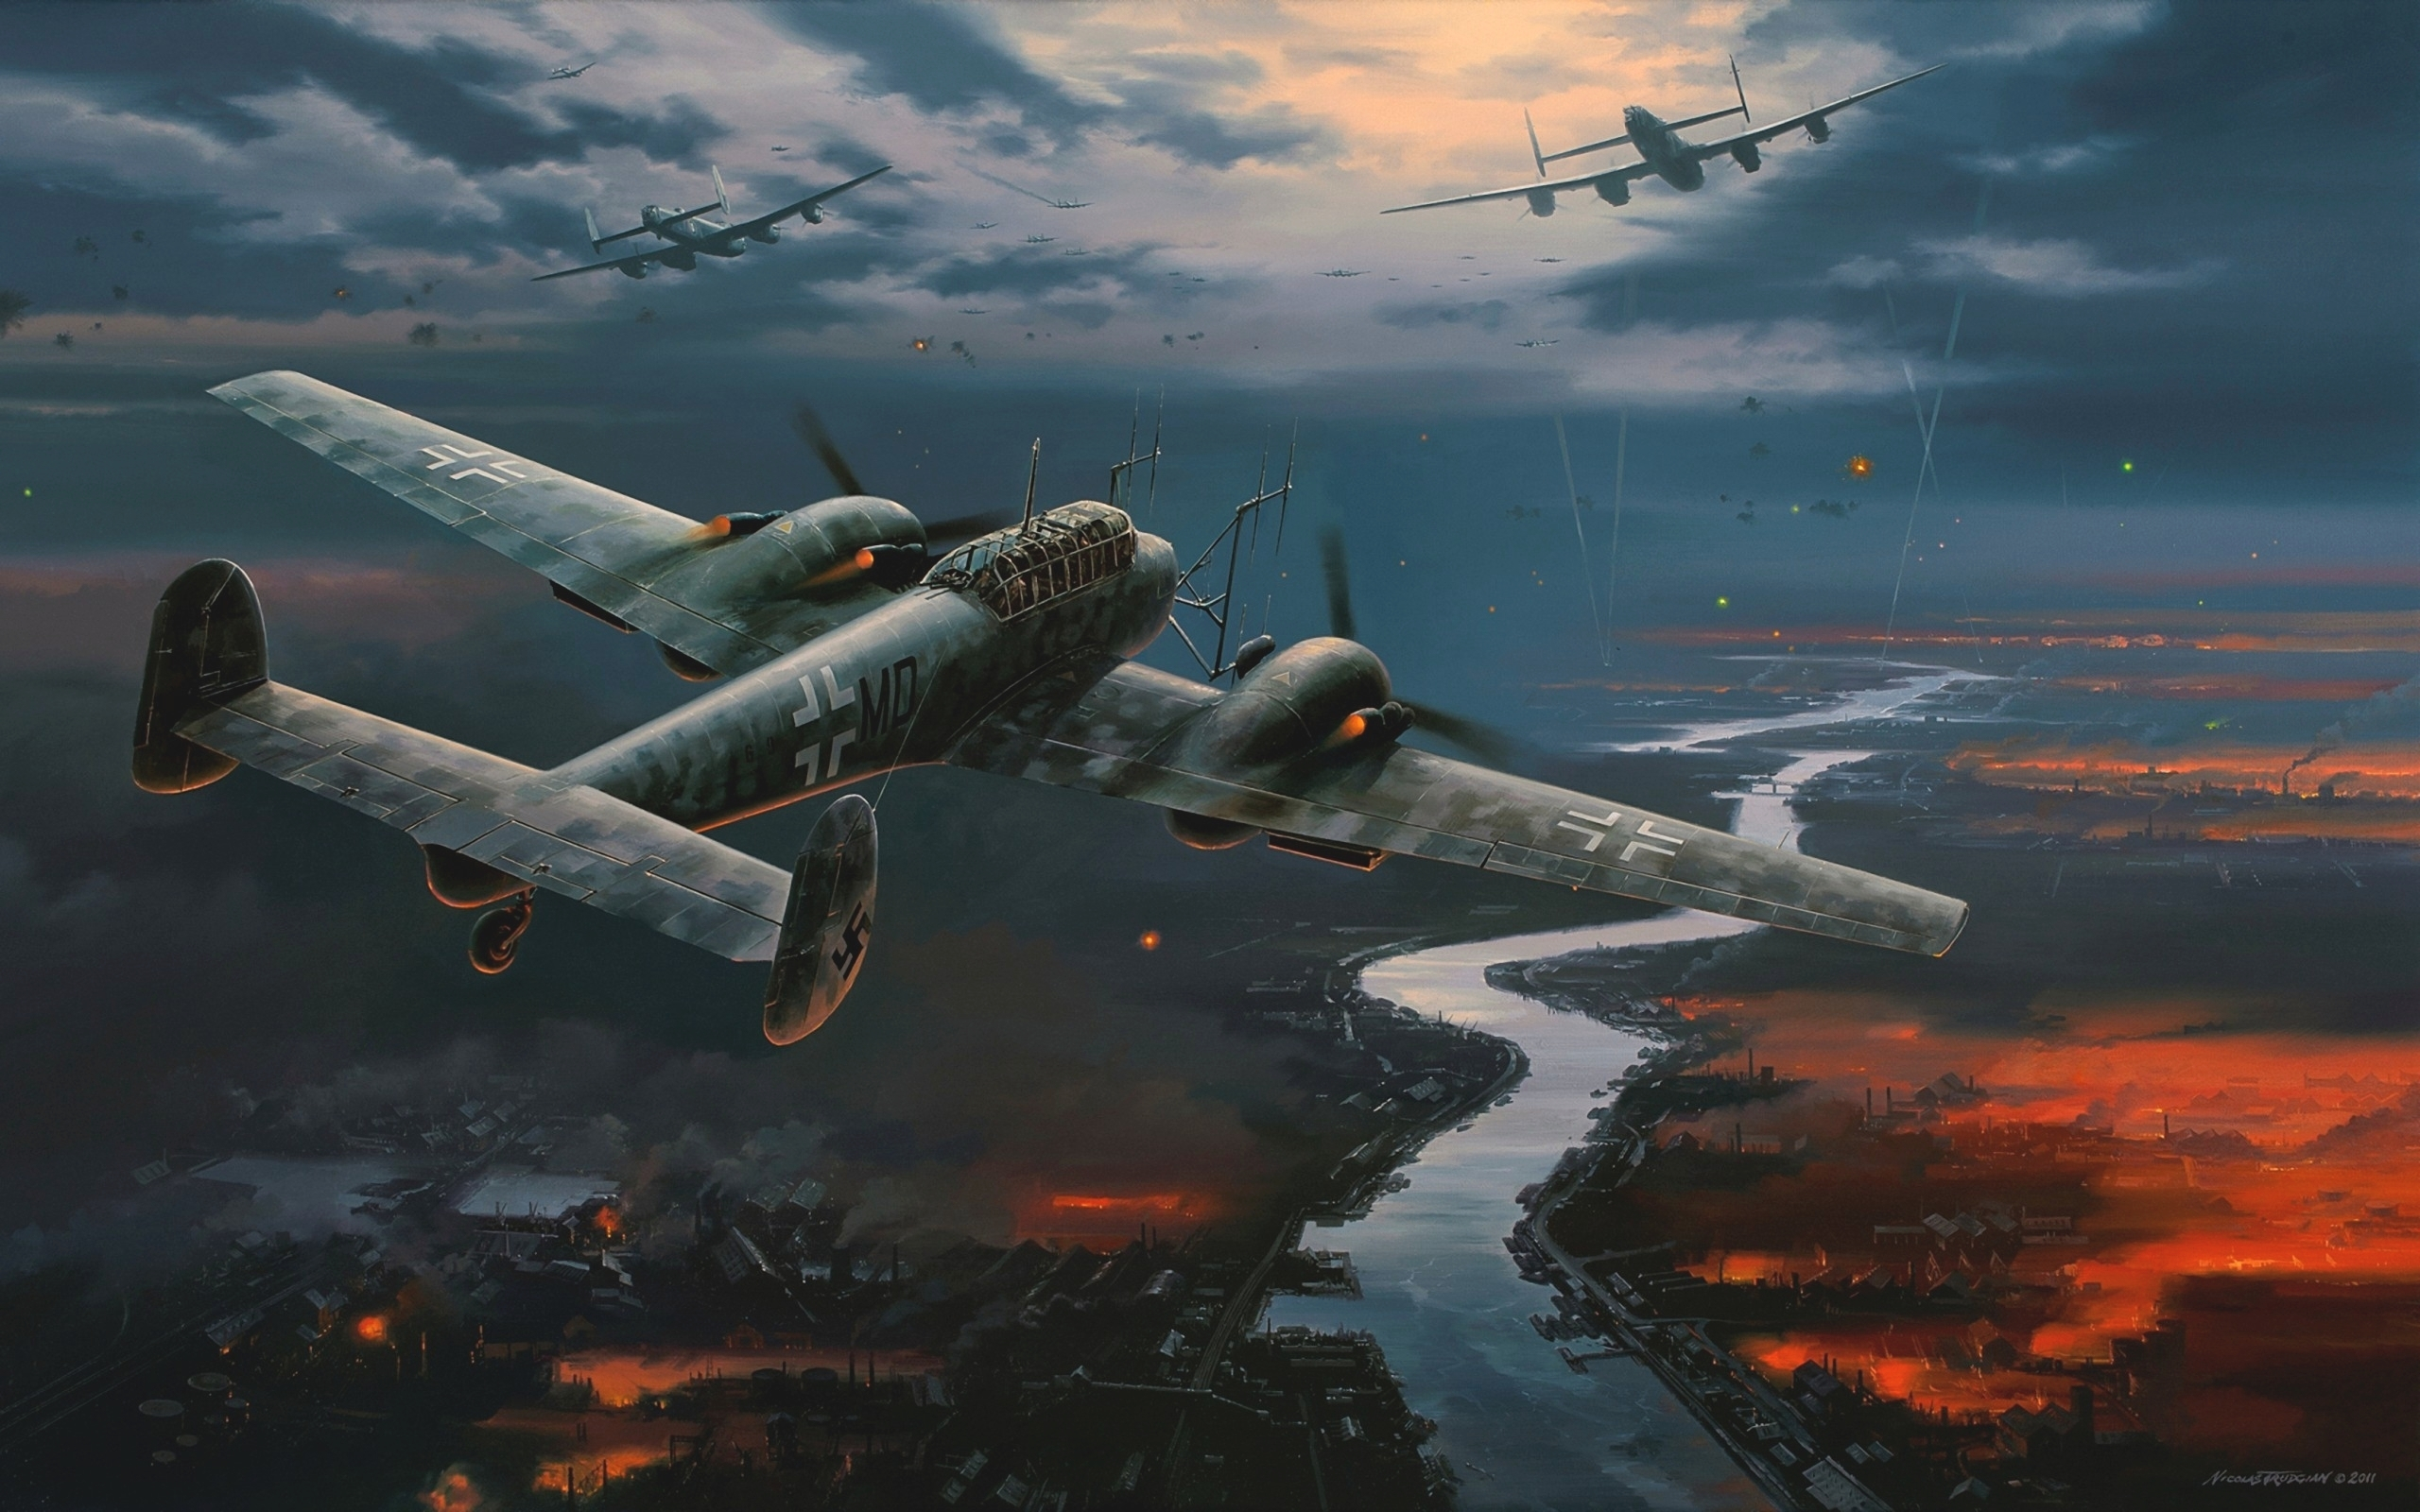 Messerschmitt Bf 110 Hd Wallpaper Background Image 2560x1600